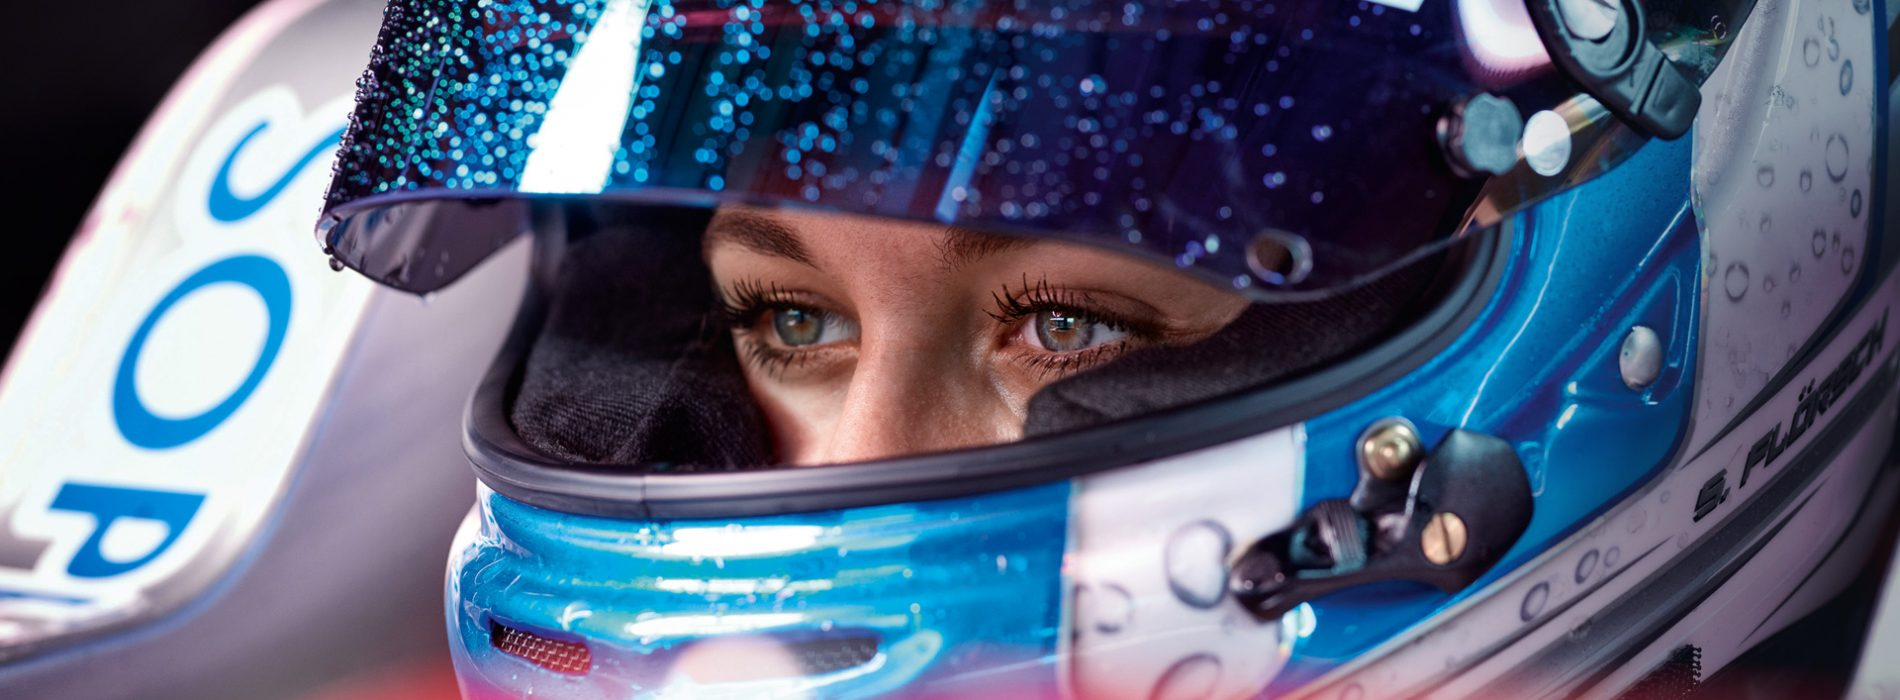 Sophia Floersch races beast of a sport: Formula 3 at 18 years of age